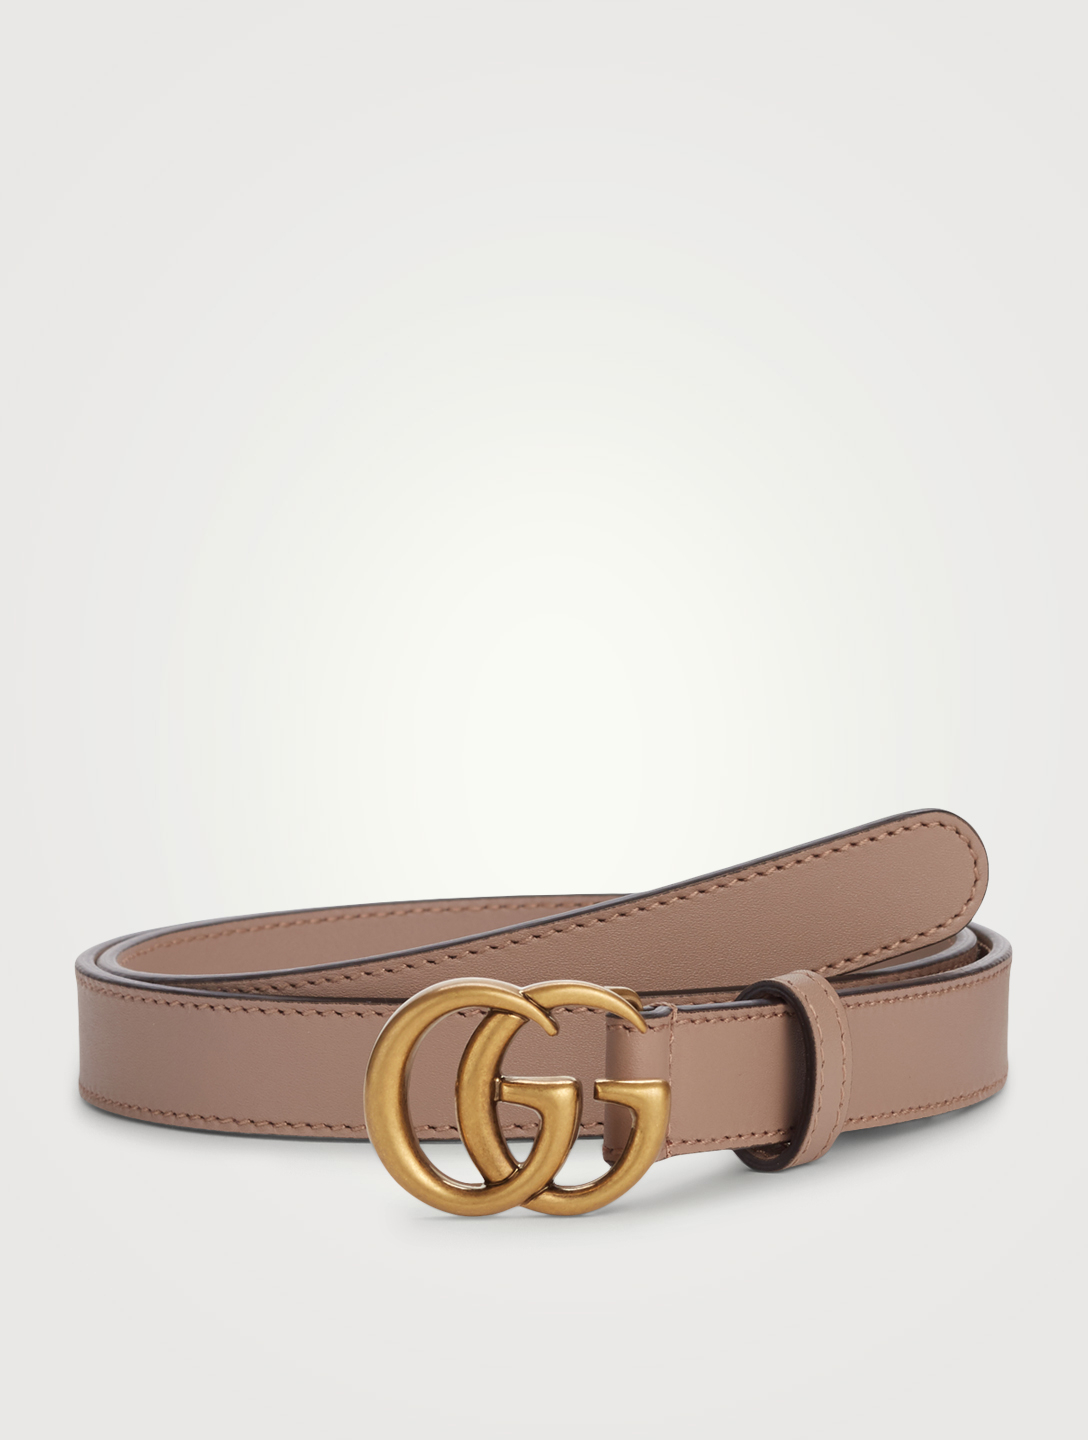 GUCCI Leather Belt With Double G Buckle Women's Pink